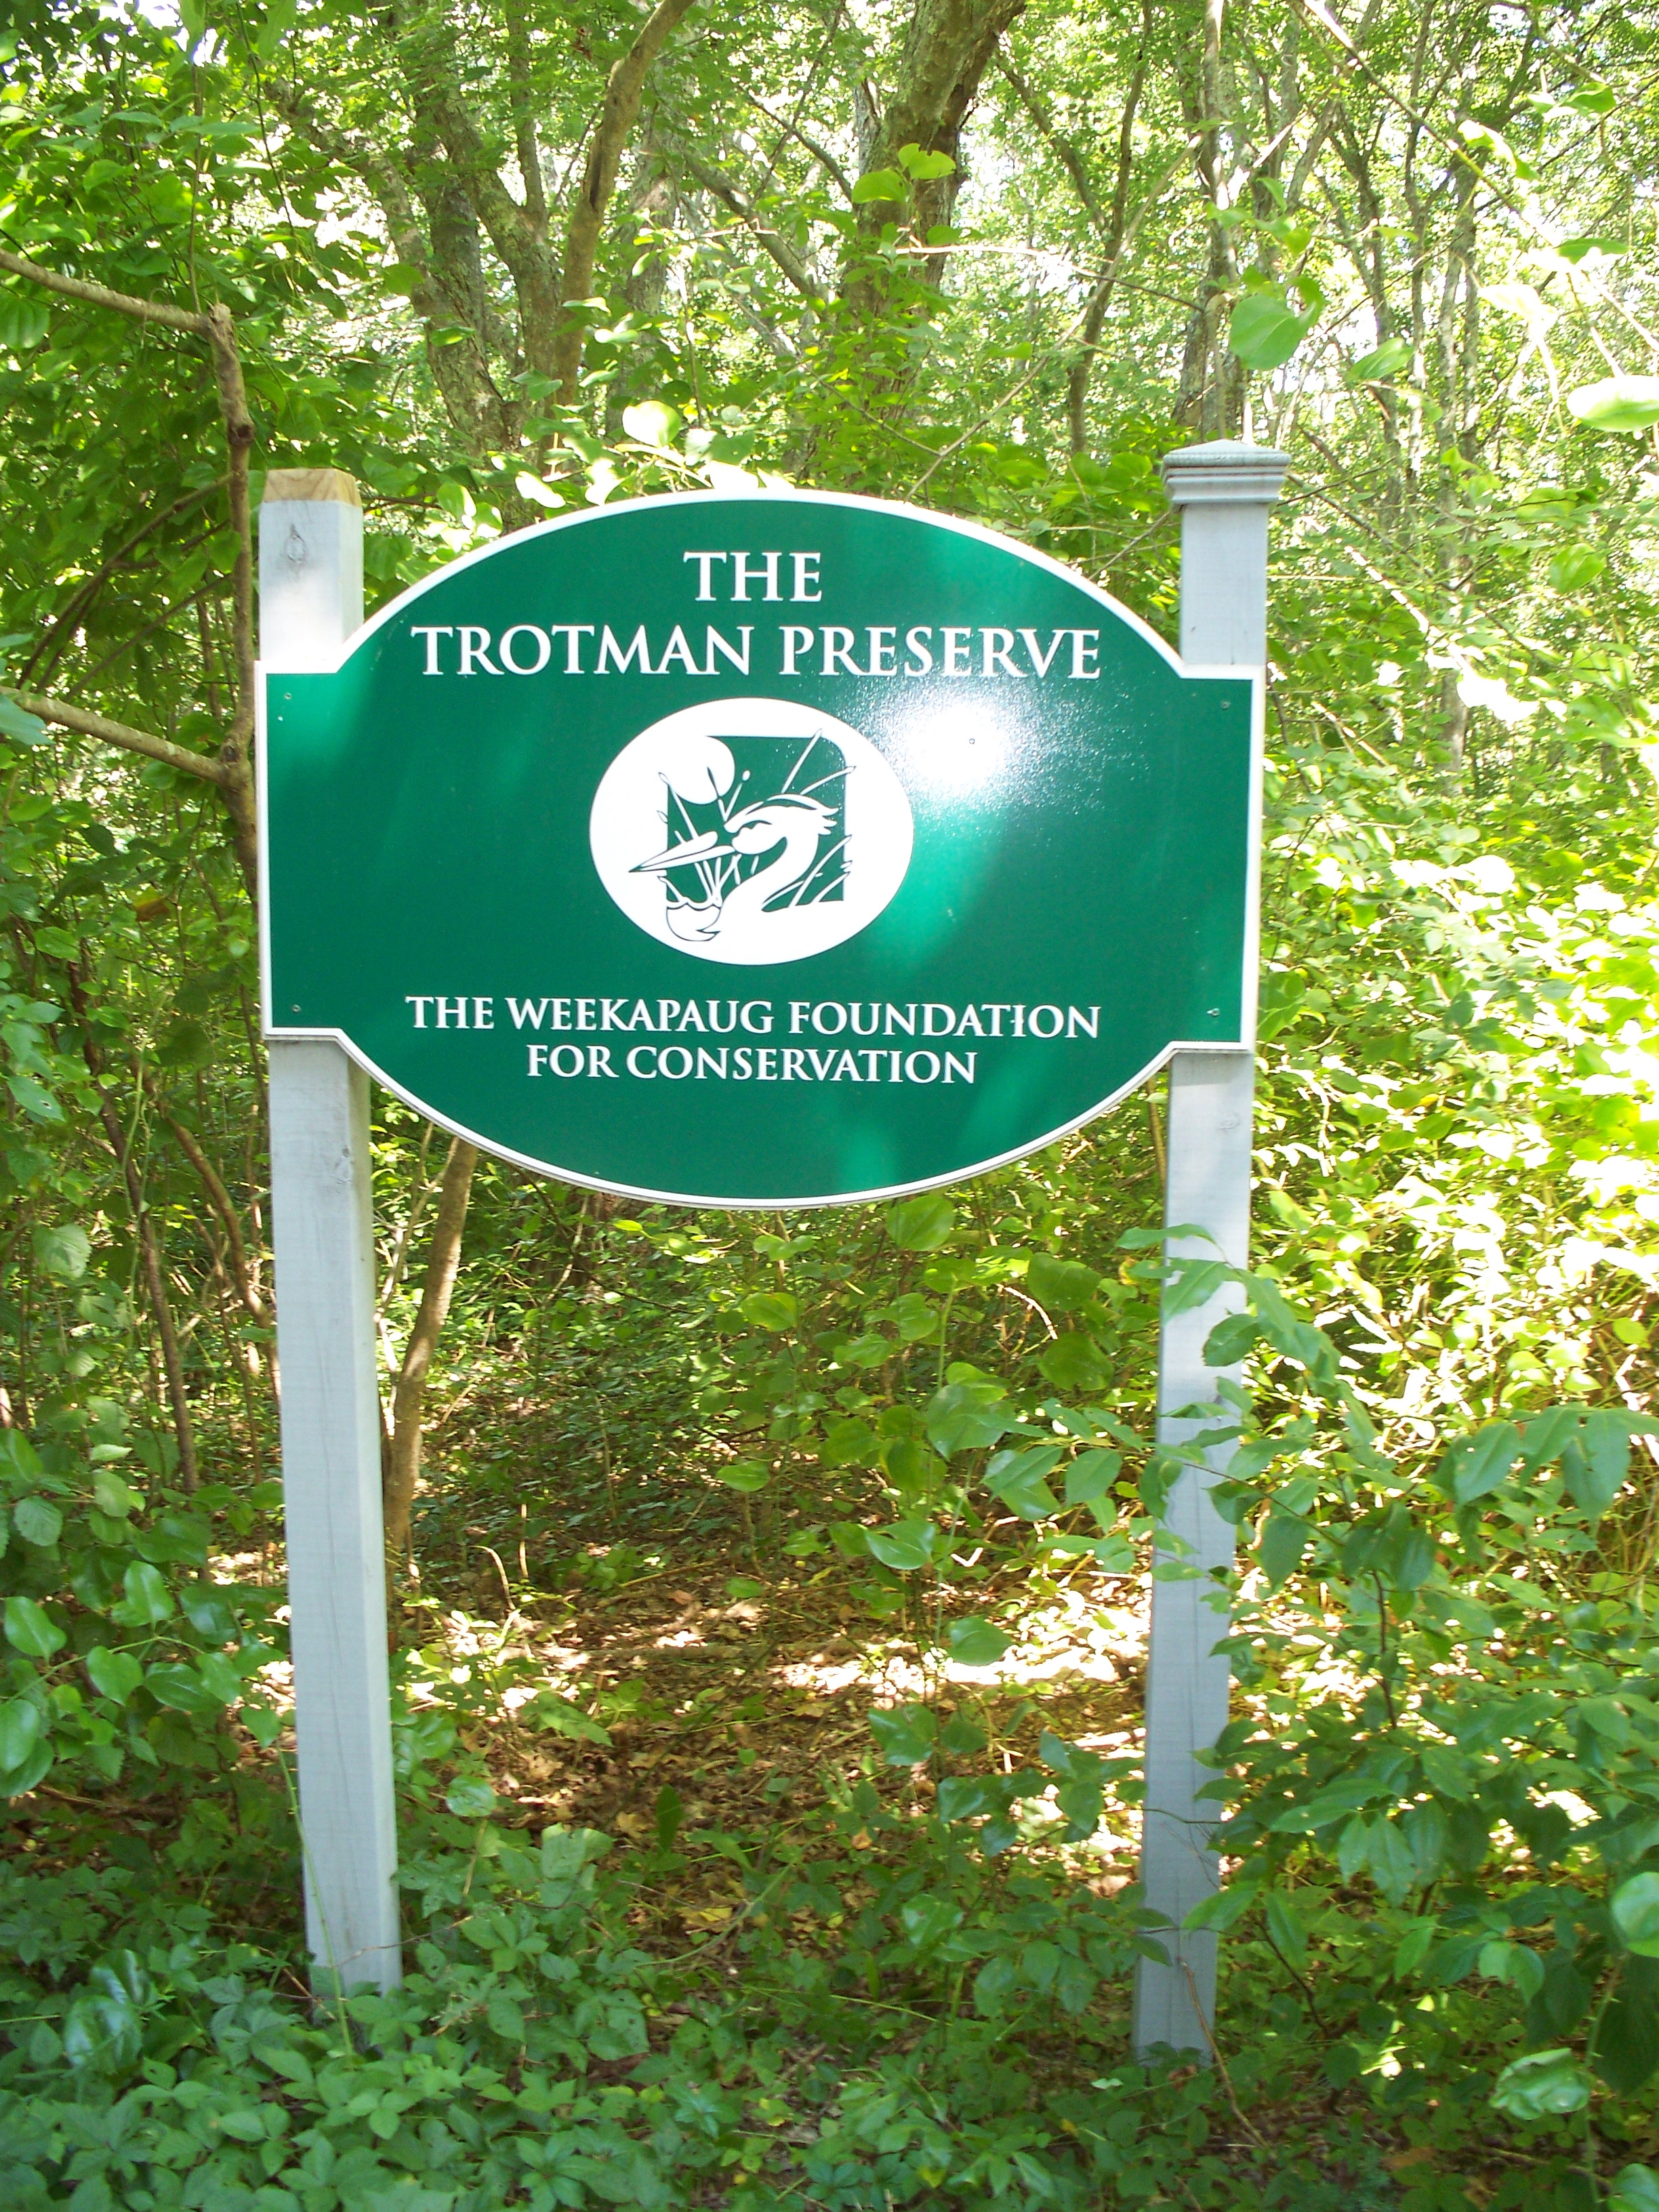 7A. The Trotman Preserve